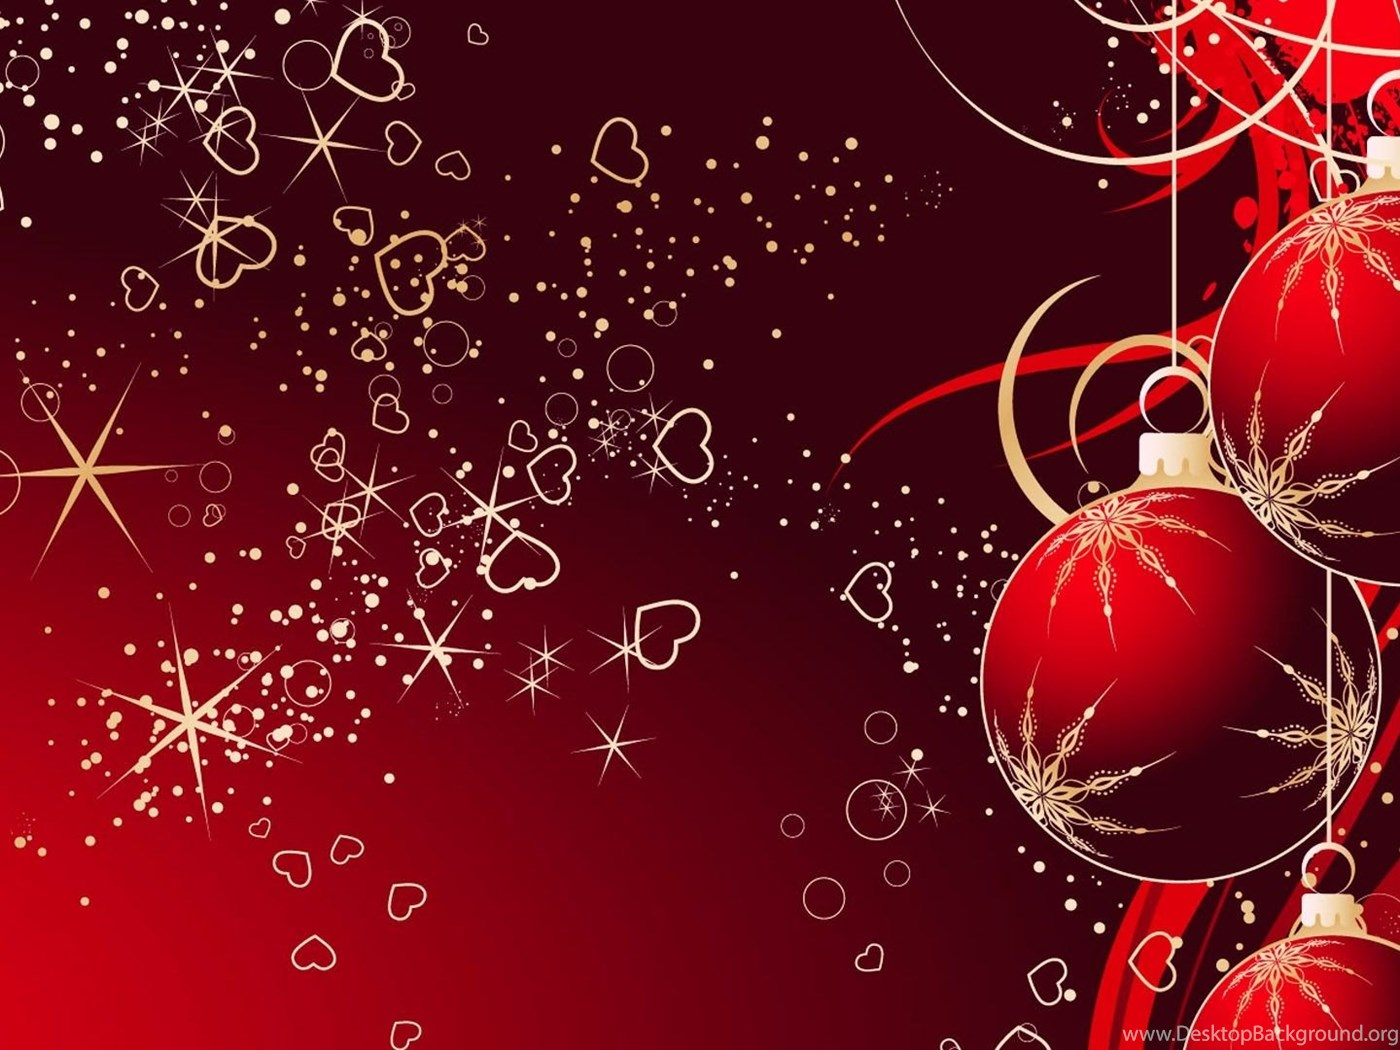 Cute Wallpaper For Ipod Touch 5 Cute Christmas Backgrounds Wallpaper Desktop Background